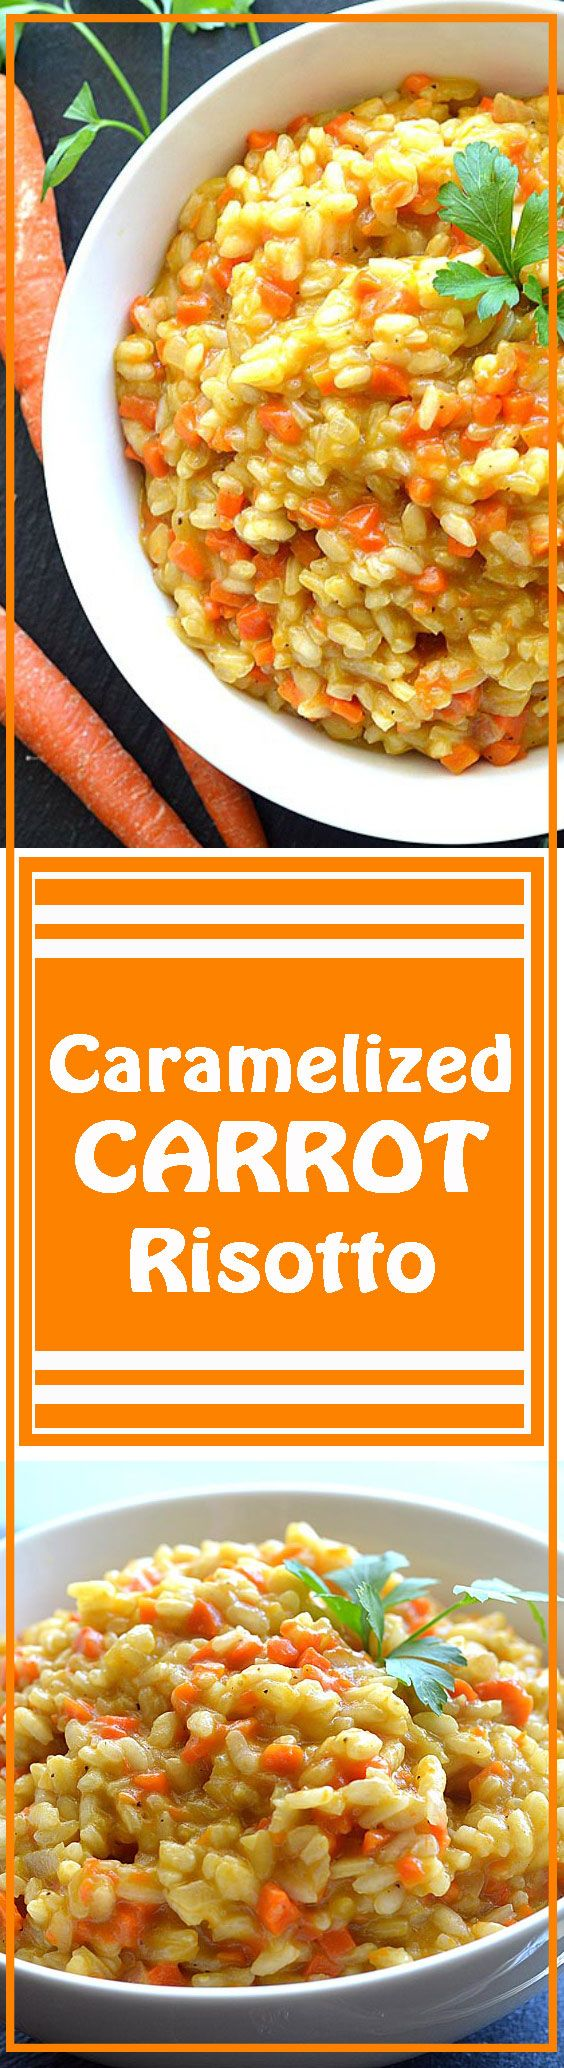 ... Carrot Risotto | Recipe | Risotto, Caramelized carrots and Carrots